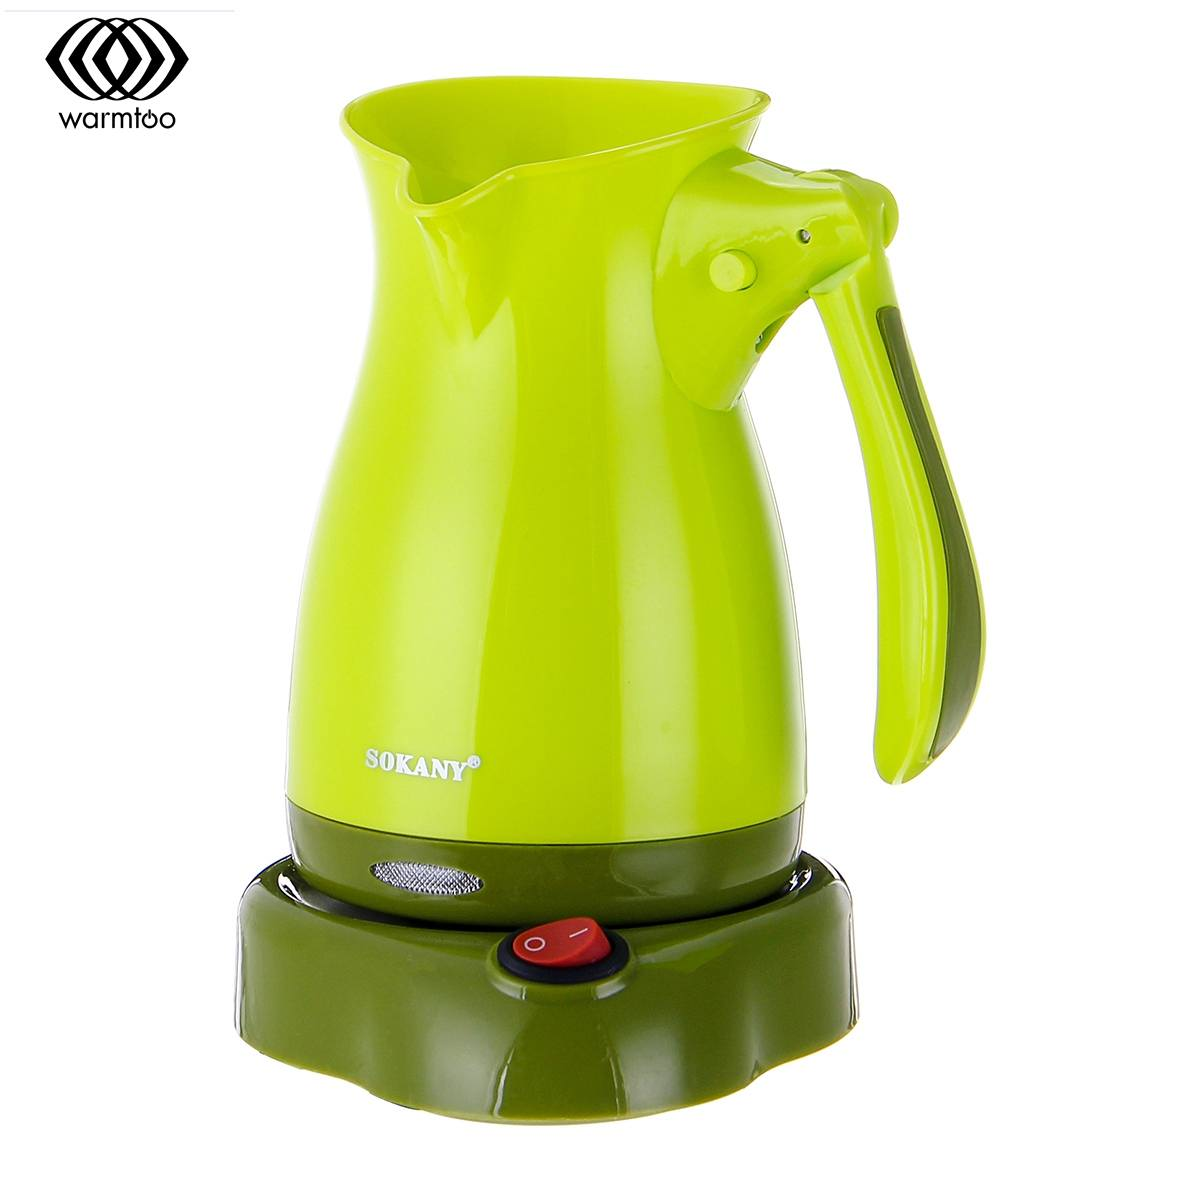 220V 5L Electric Coffee Pot Maker For Kitchen Heaters Stove Hot Cooker Plate Milk Water Coffee Tea Heating Kettles Home Office